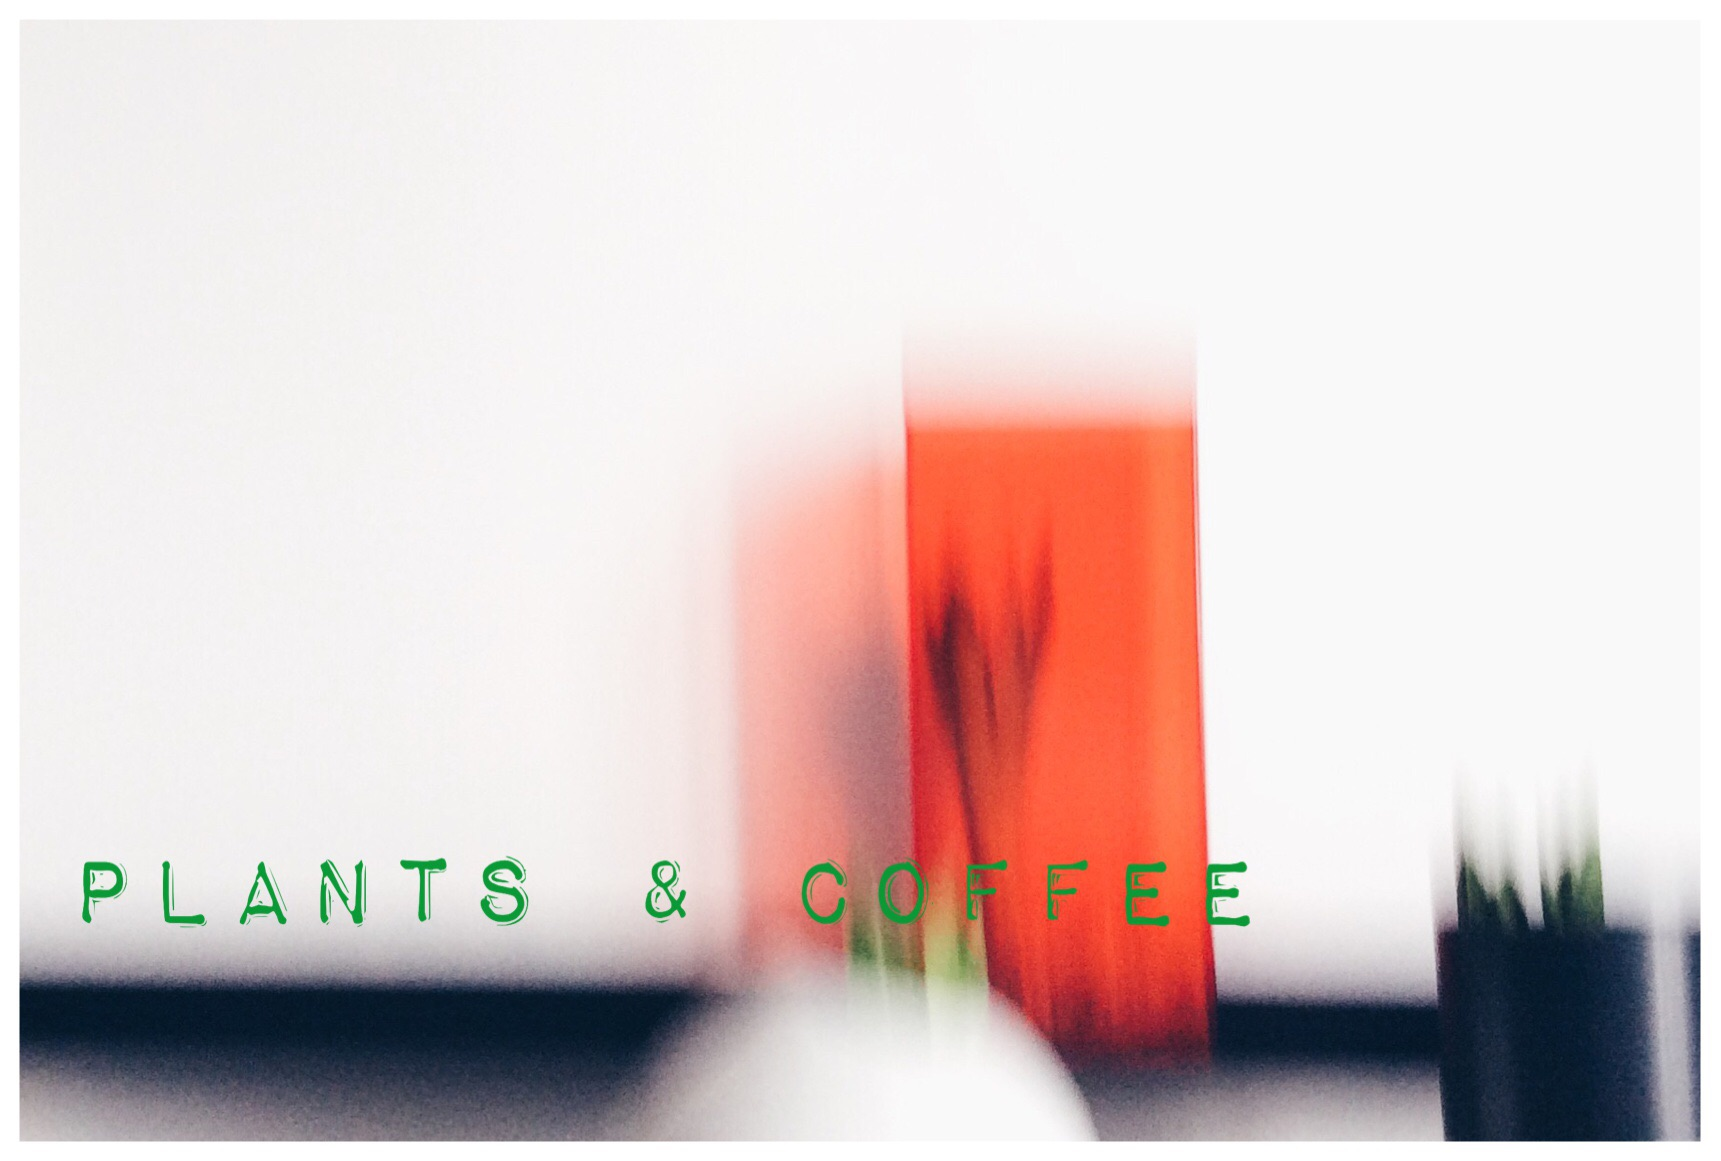 Plants & Coffee - Urbanjunglebloggers - knobz